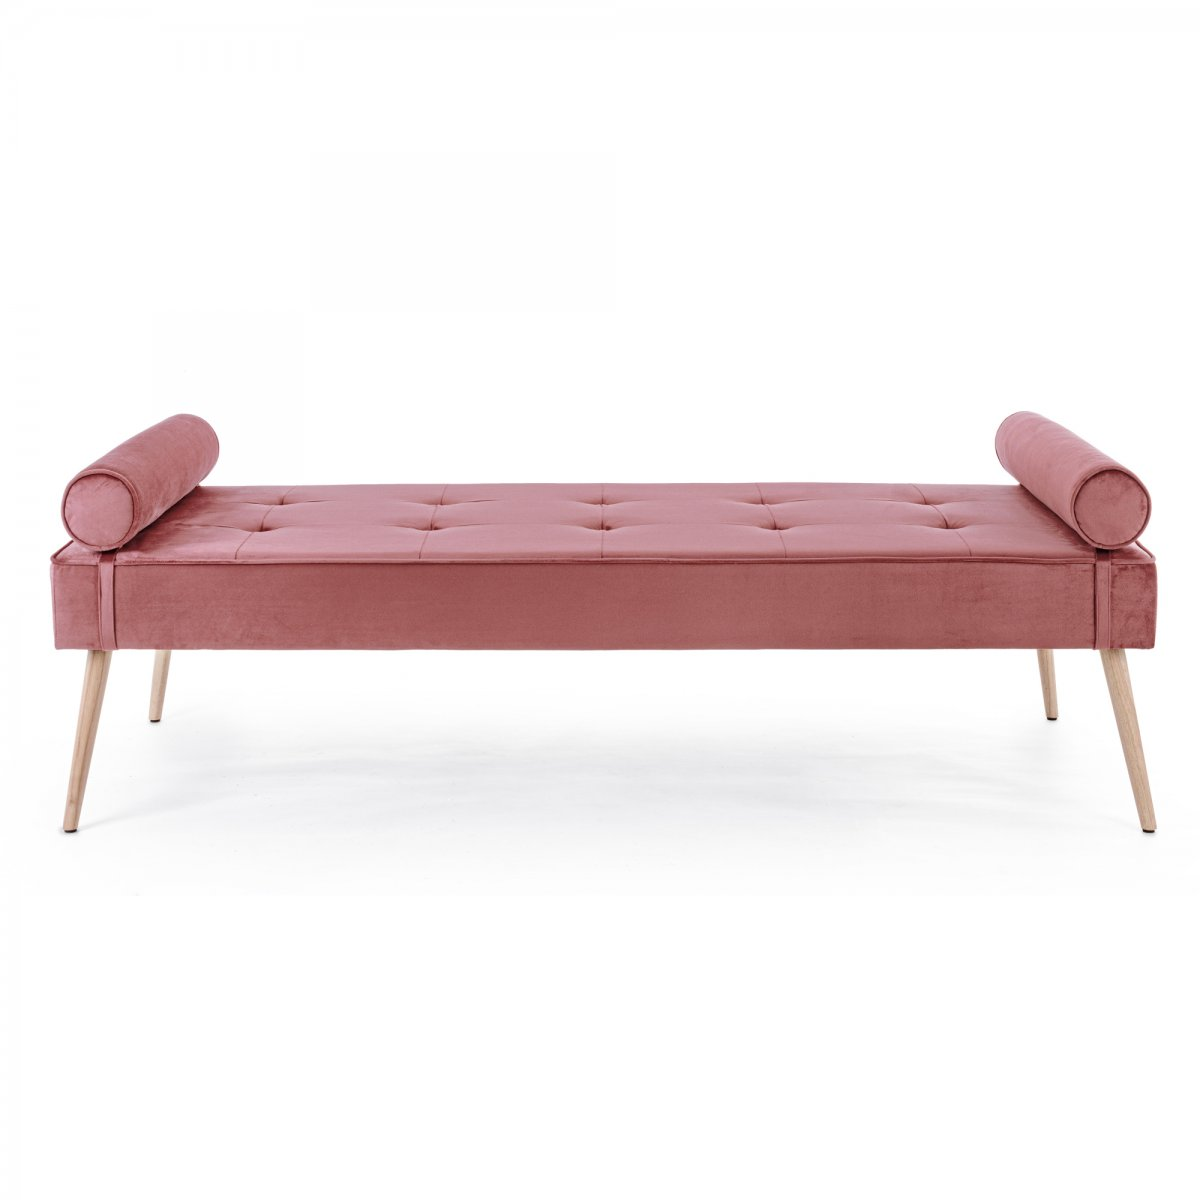 Bizzotto Home Emotion PANCA DAYBED GJSEL ROSA ANTIK